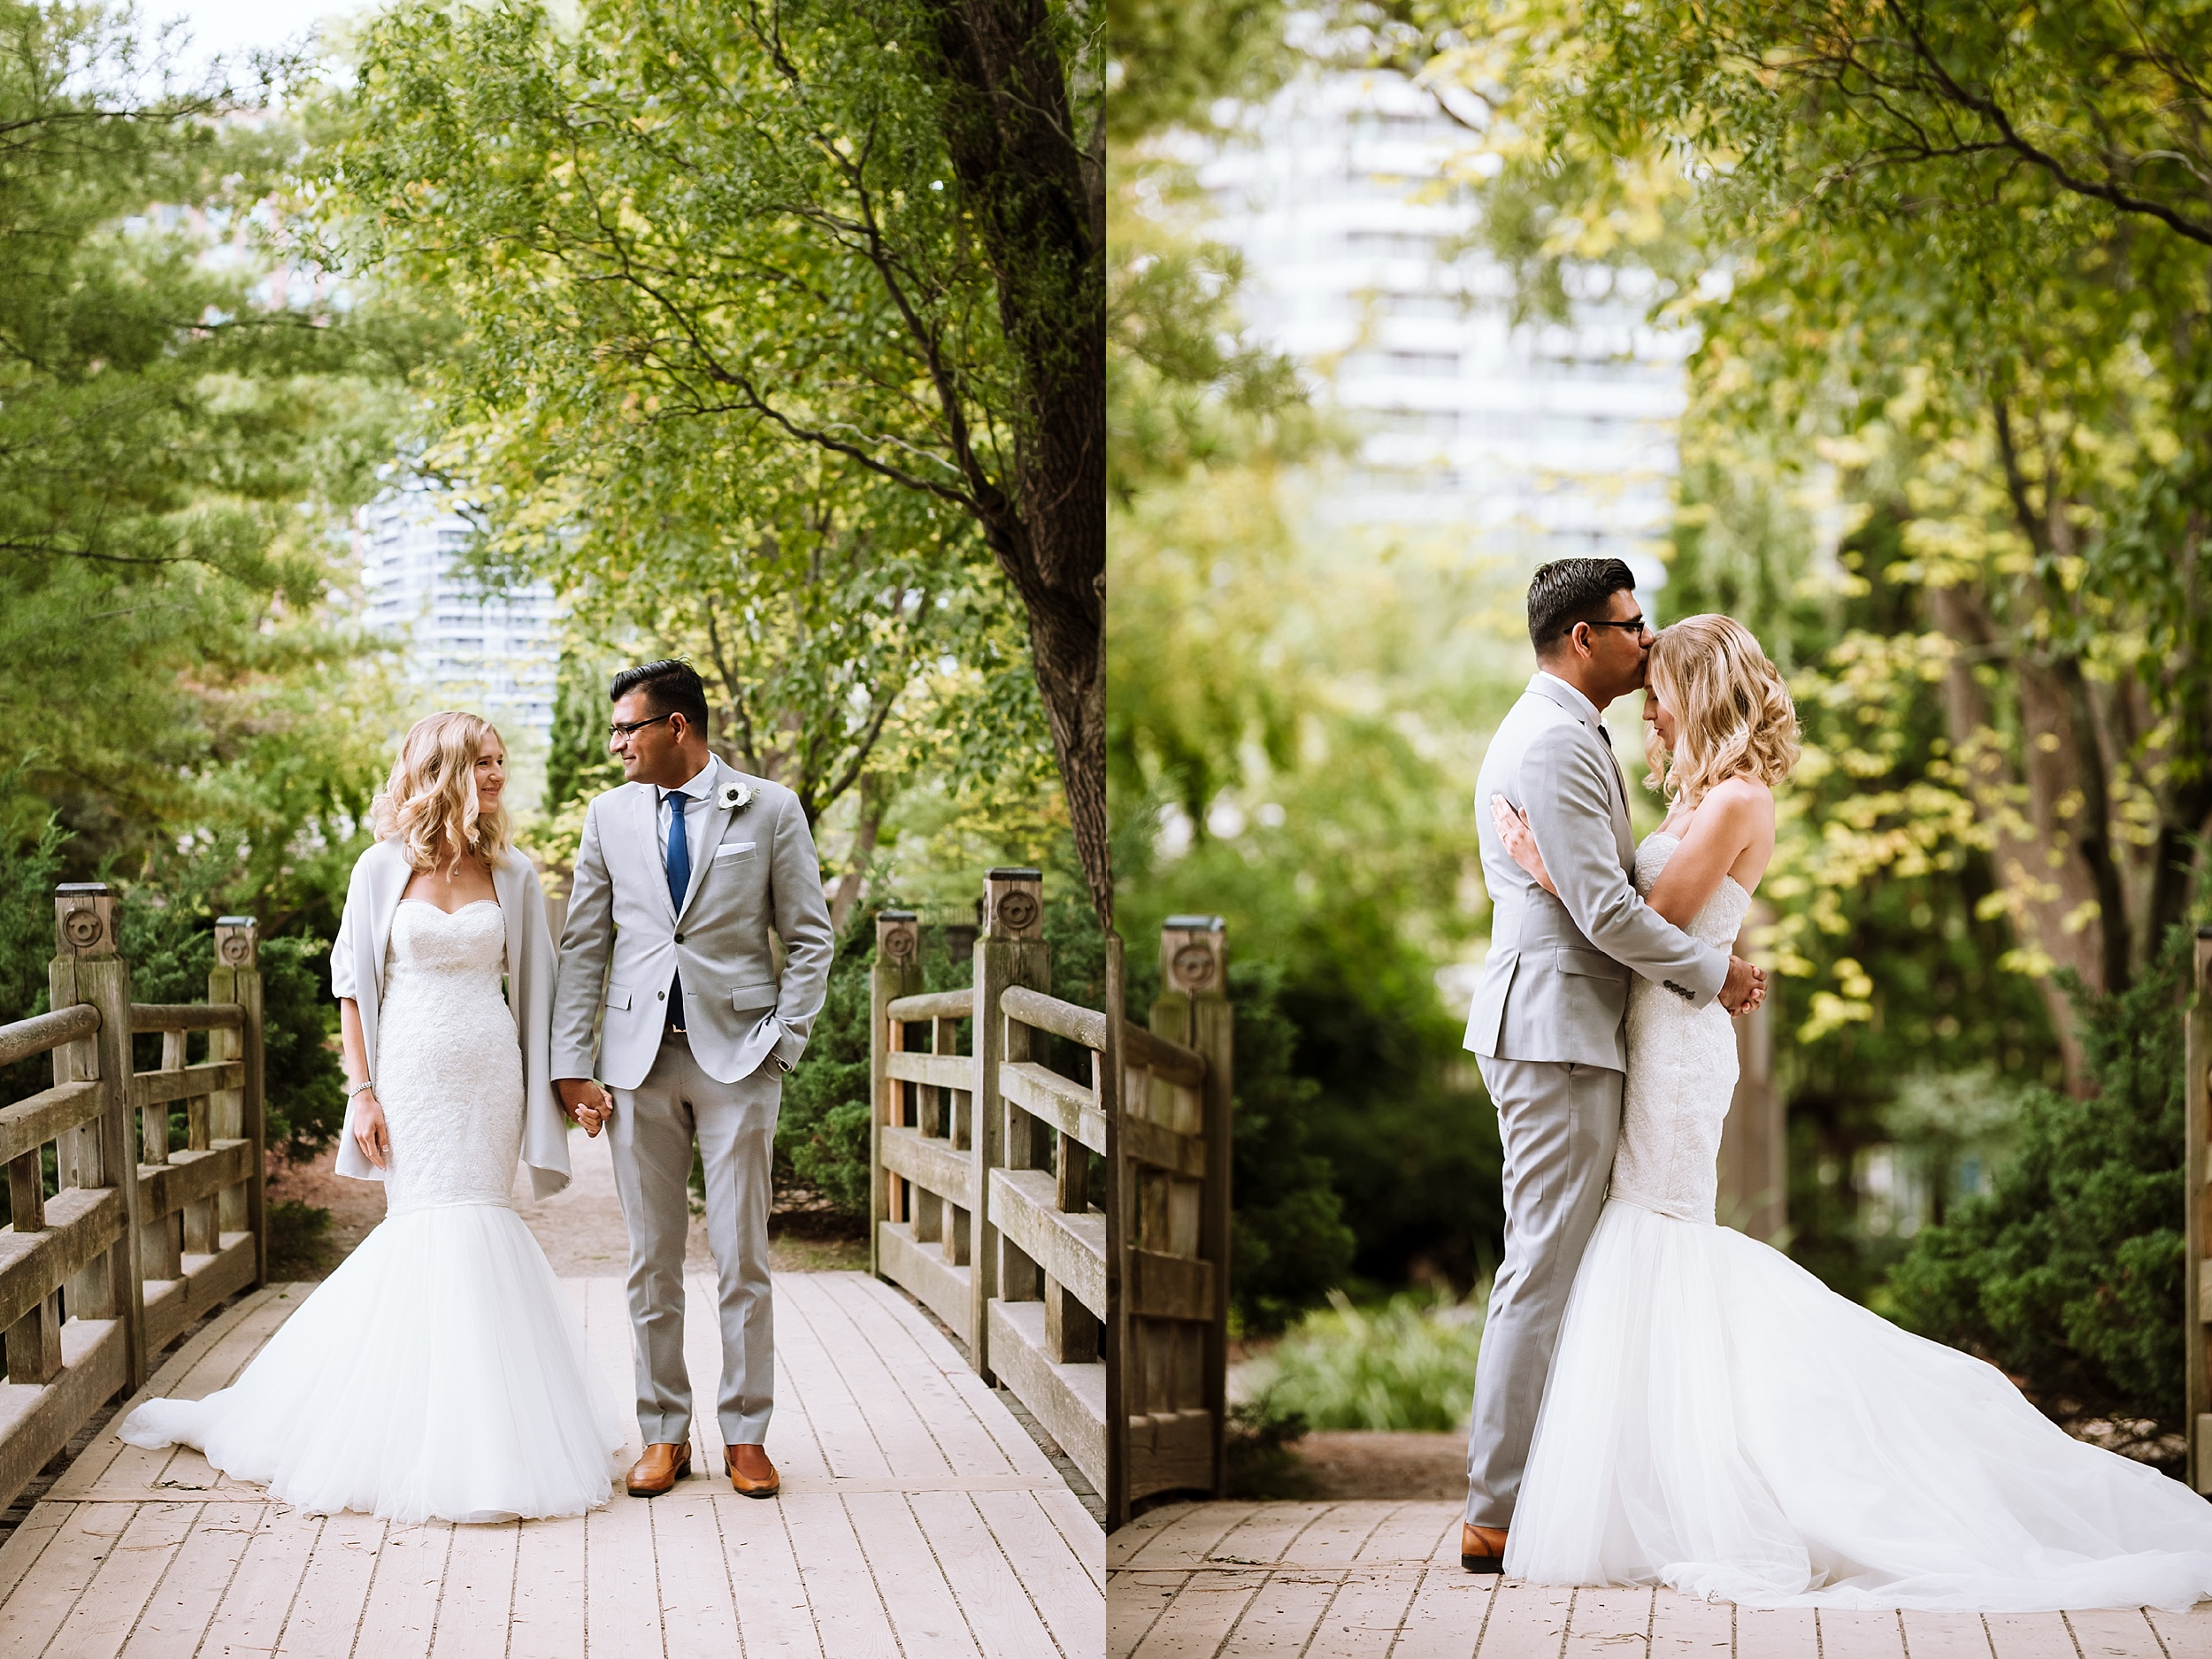 Kariya_Park_Wedding_Shoot_Toronto_Photographer_0022.jpg